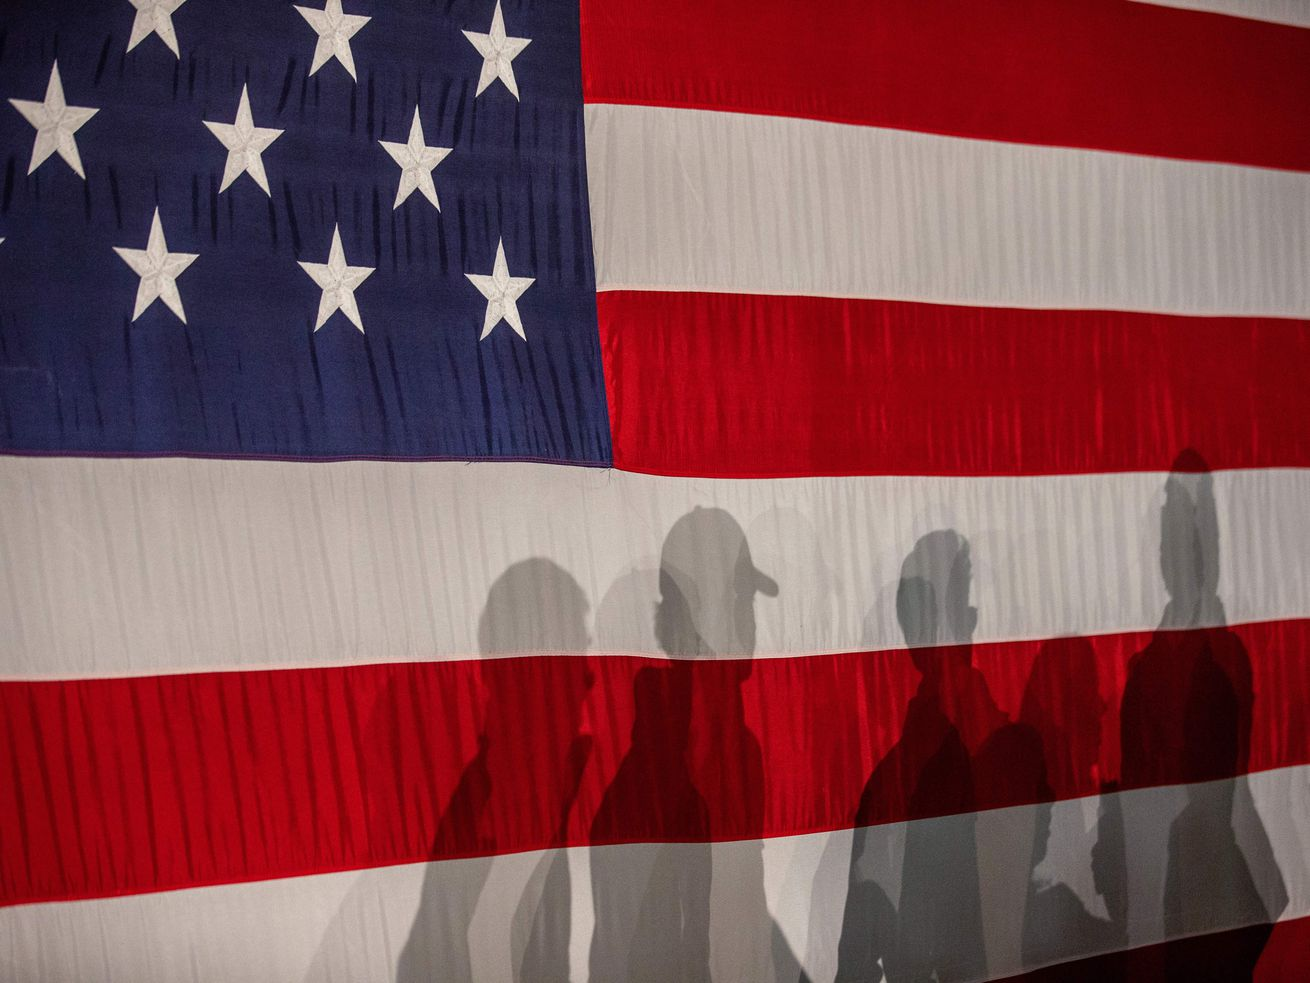 The shadows of people on an American flag backdrop.